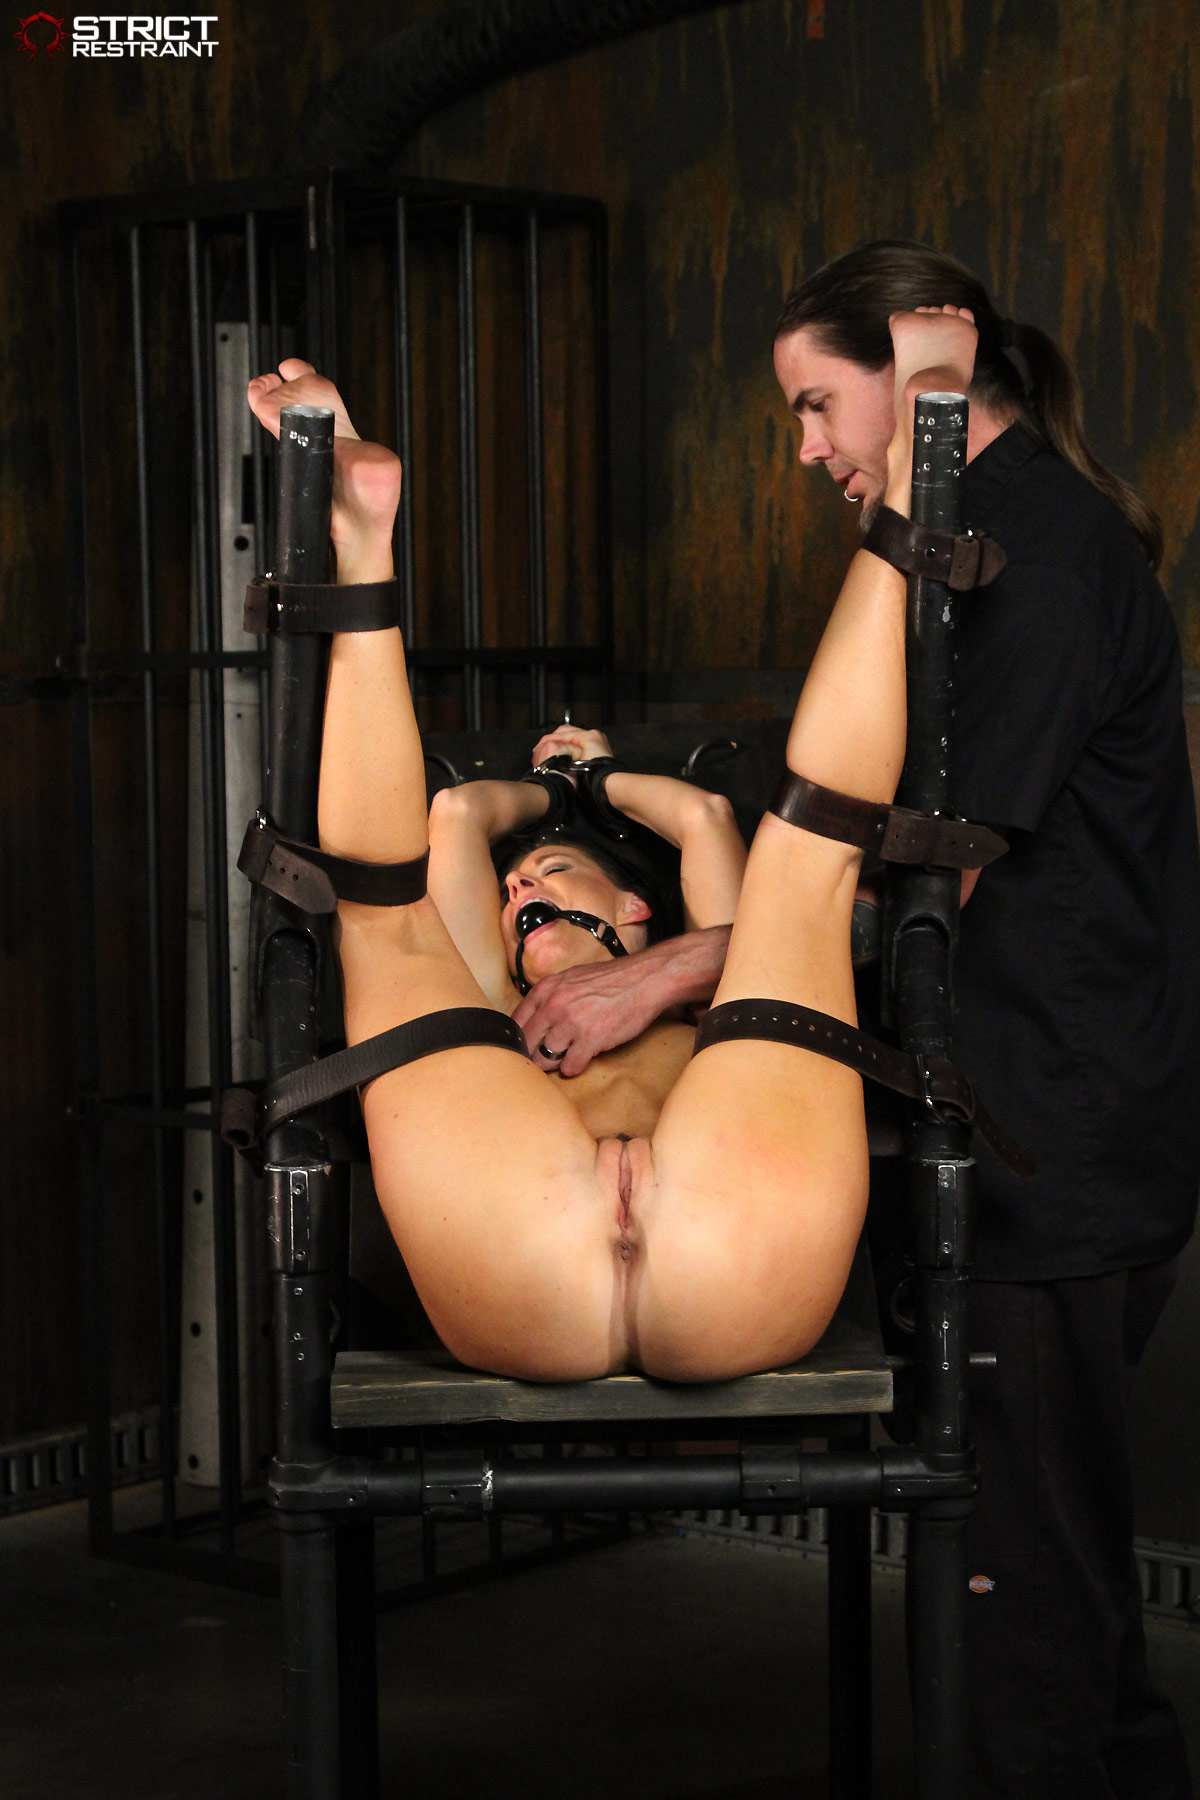 Bondage restraints and devices hentia image